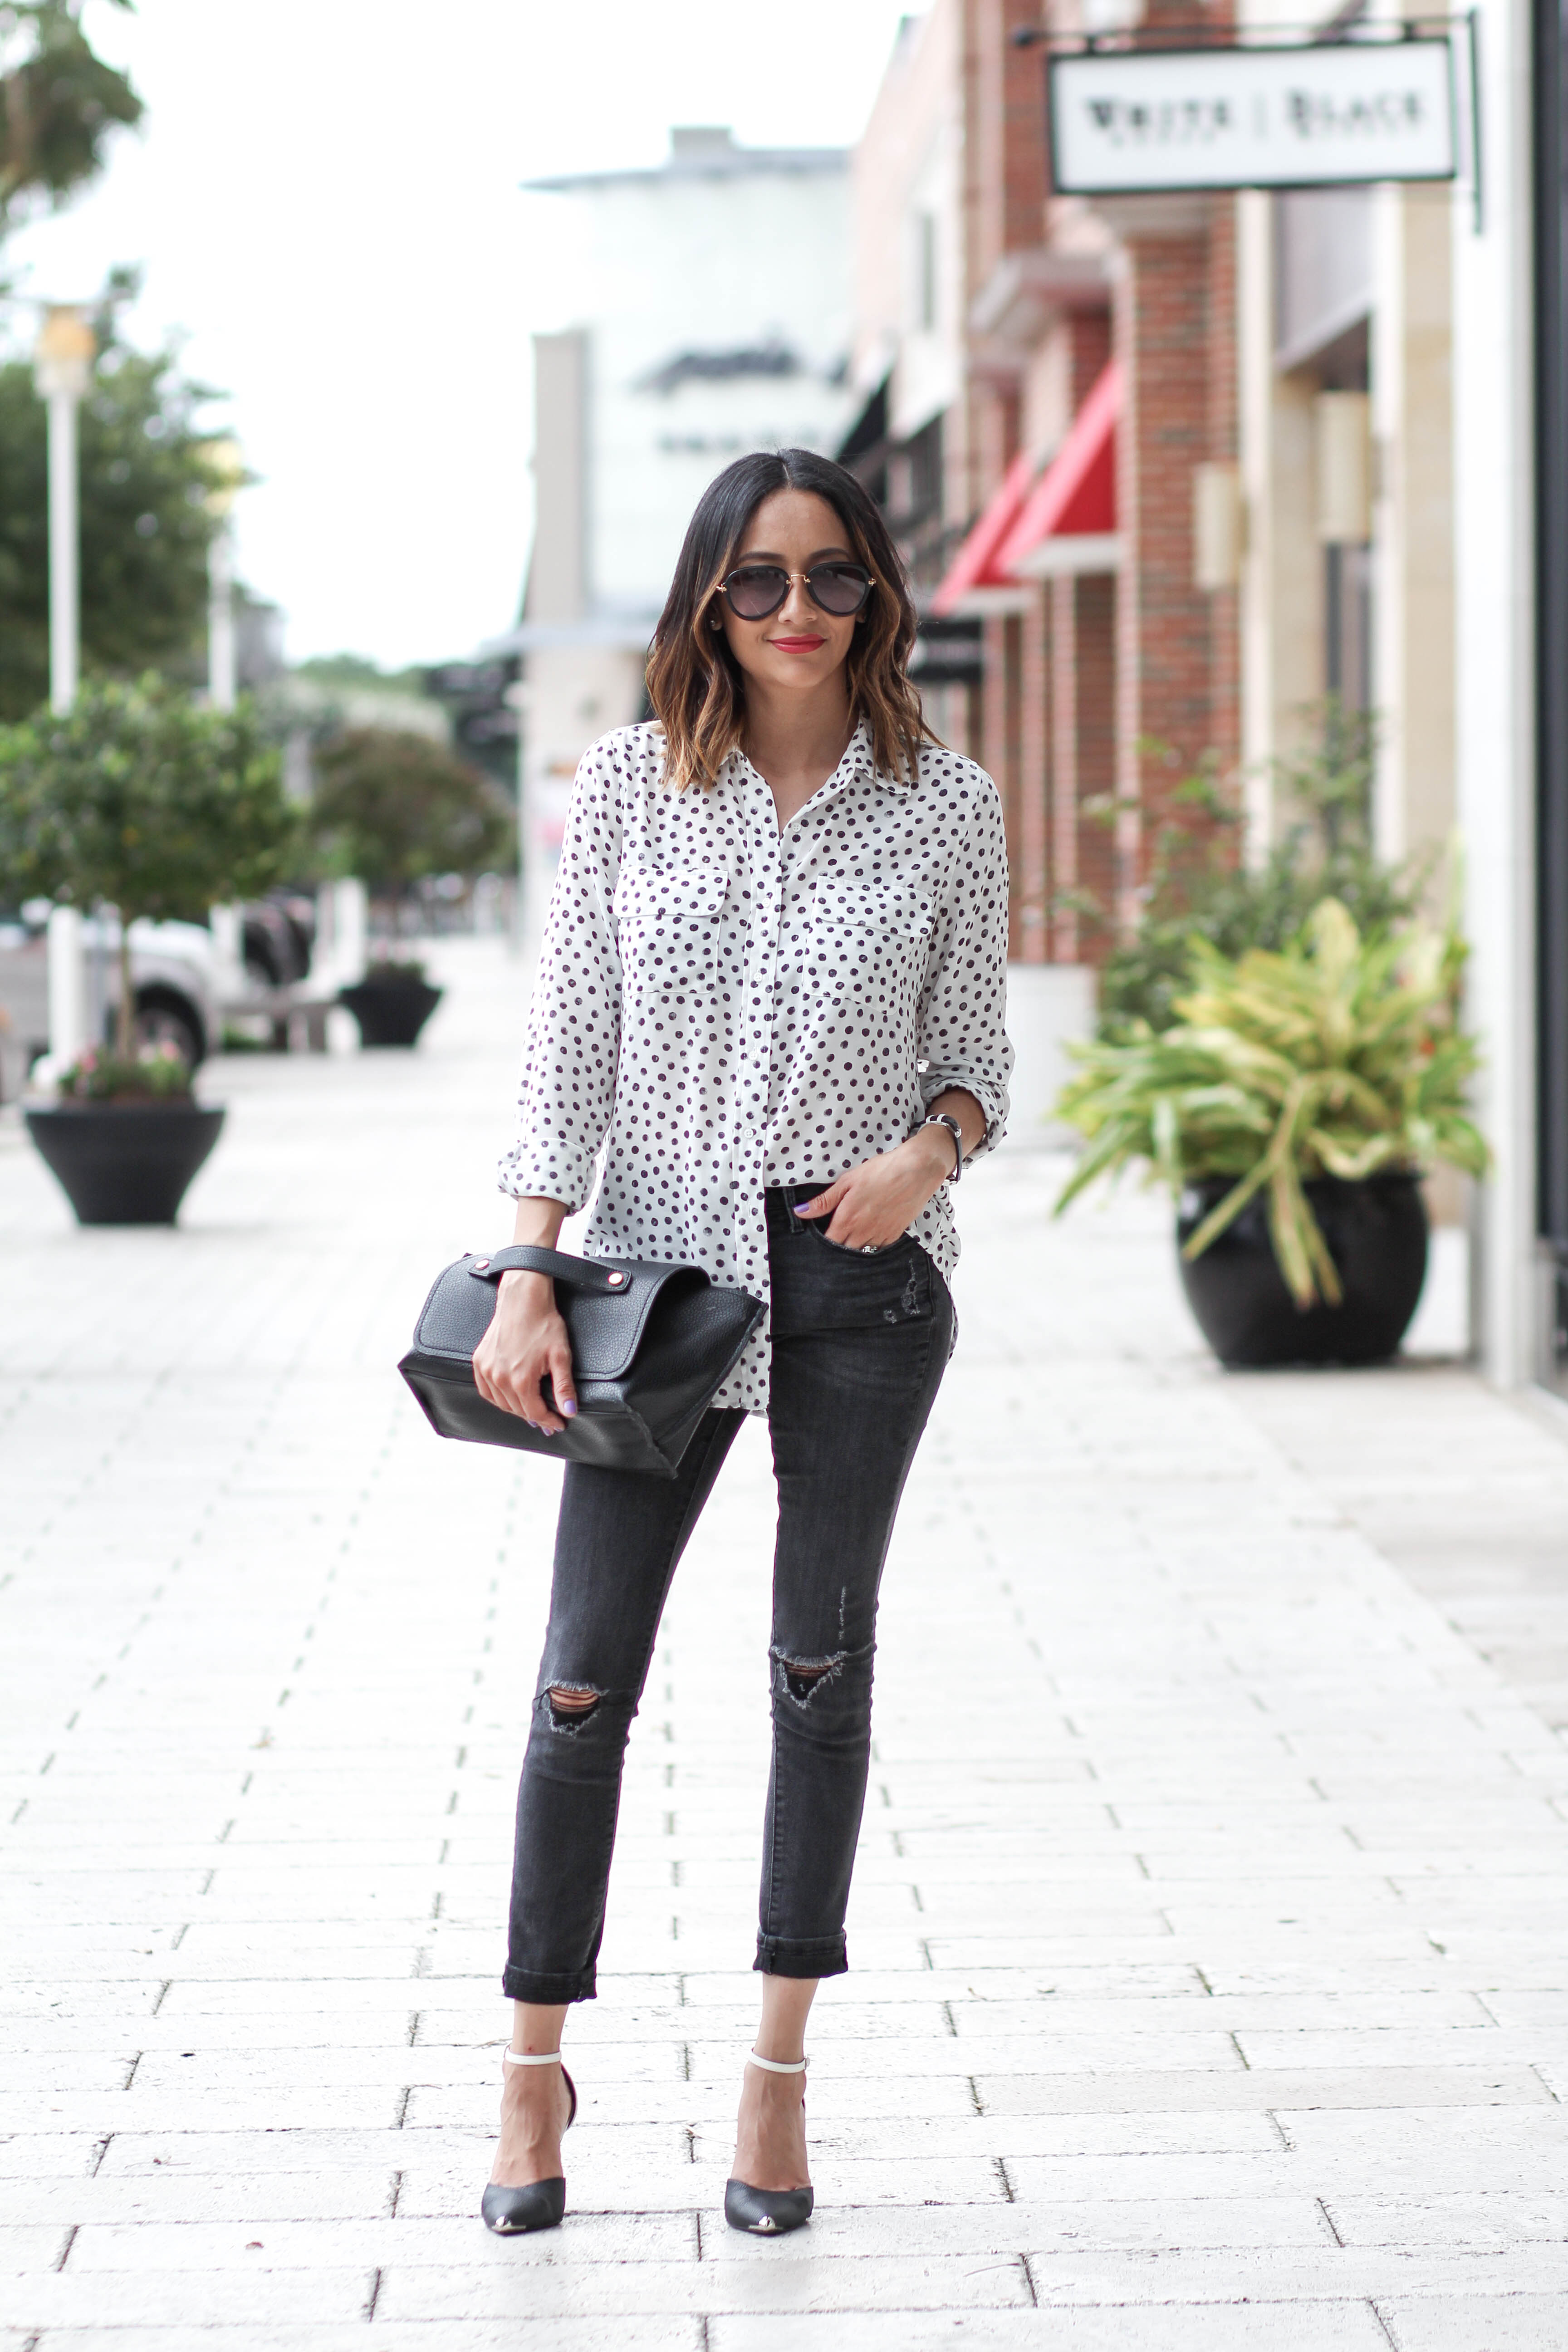 Polka Dotted Top and Skinny Jeans   Casual Look